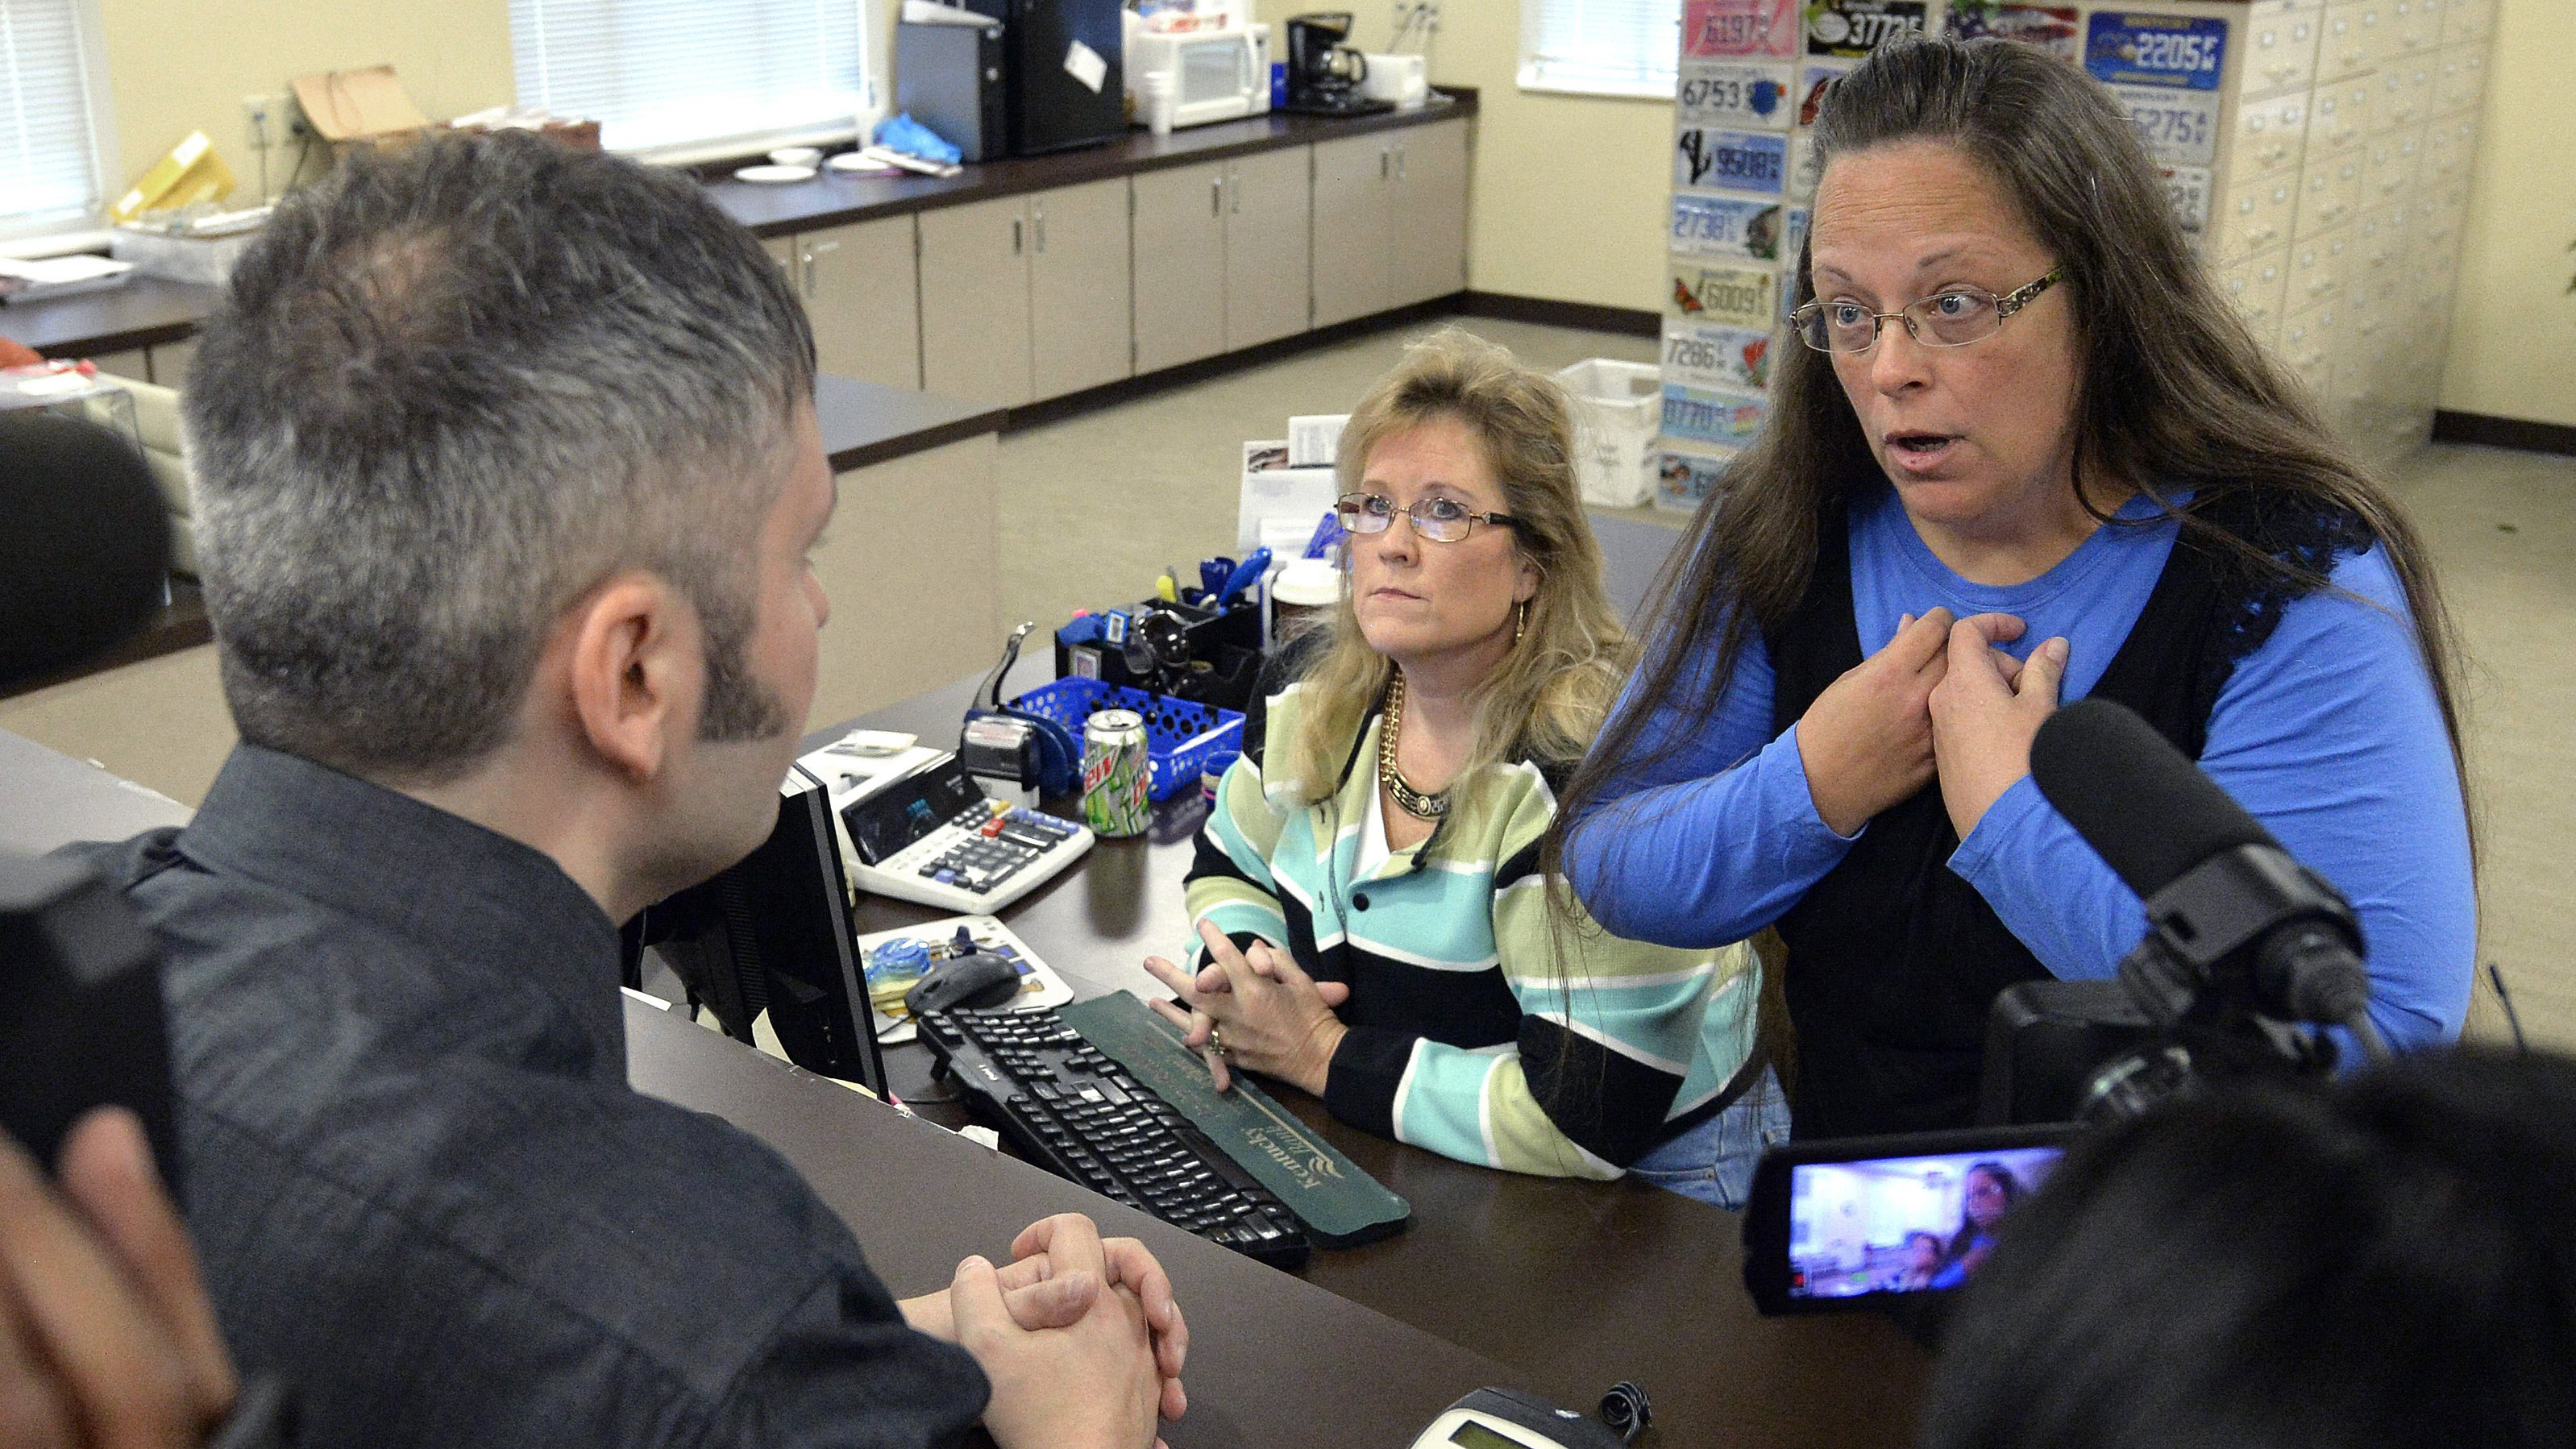 kentucky clerk kim davis defies supreme court turns down gay  kentucky clerk kim davis defies supreme court turns down gay couples nbc news